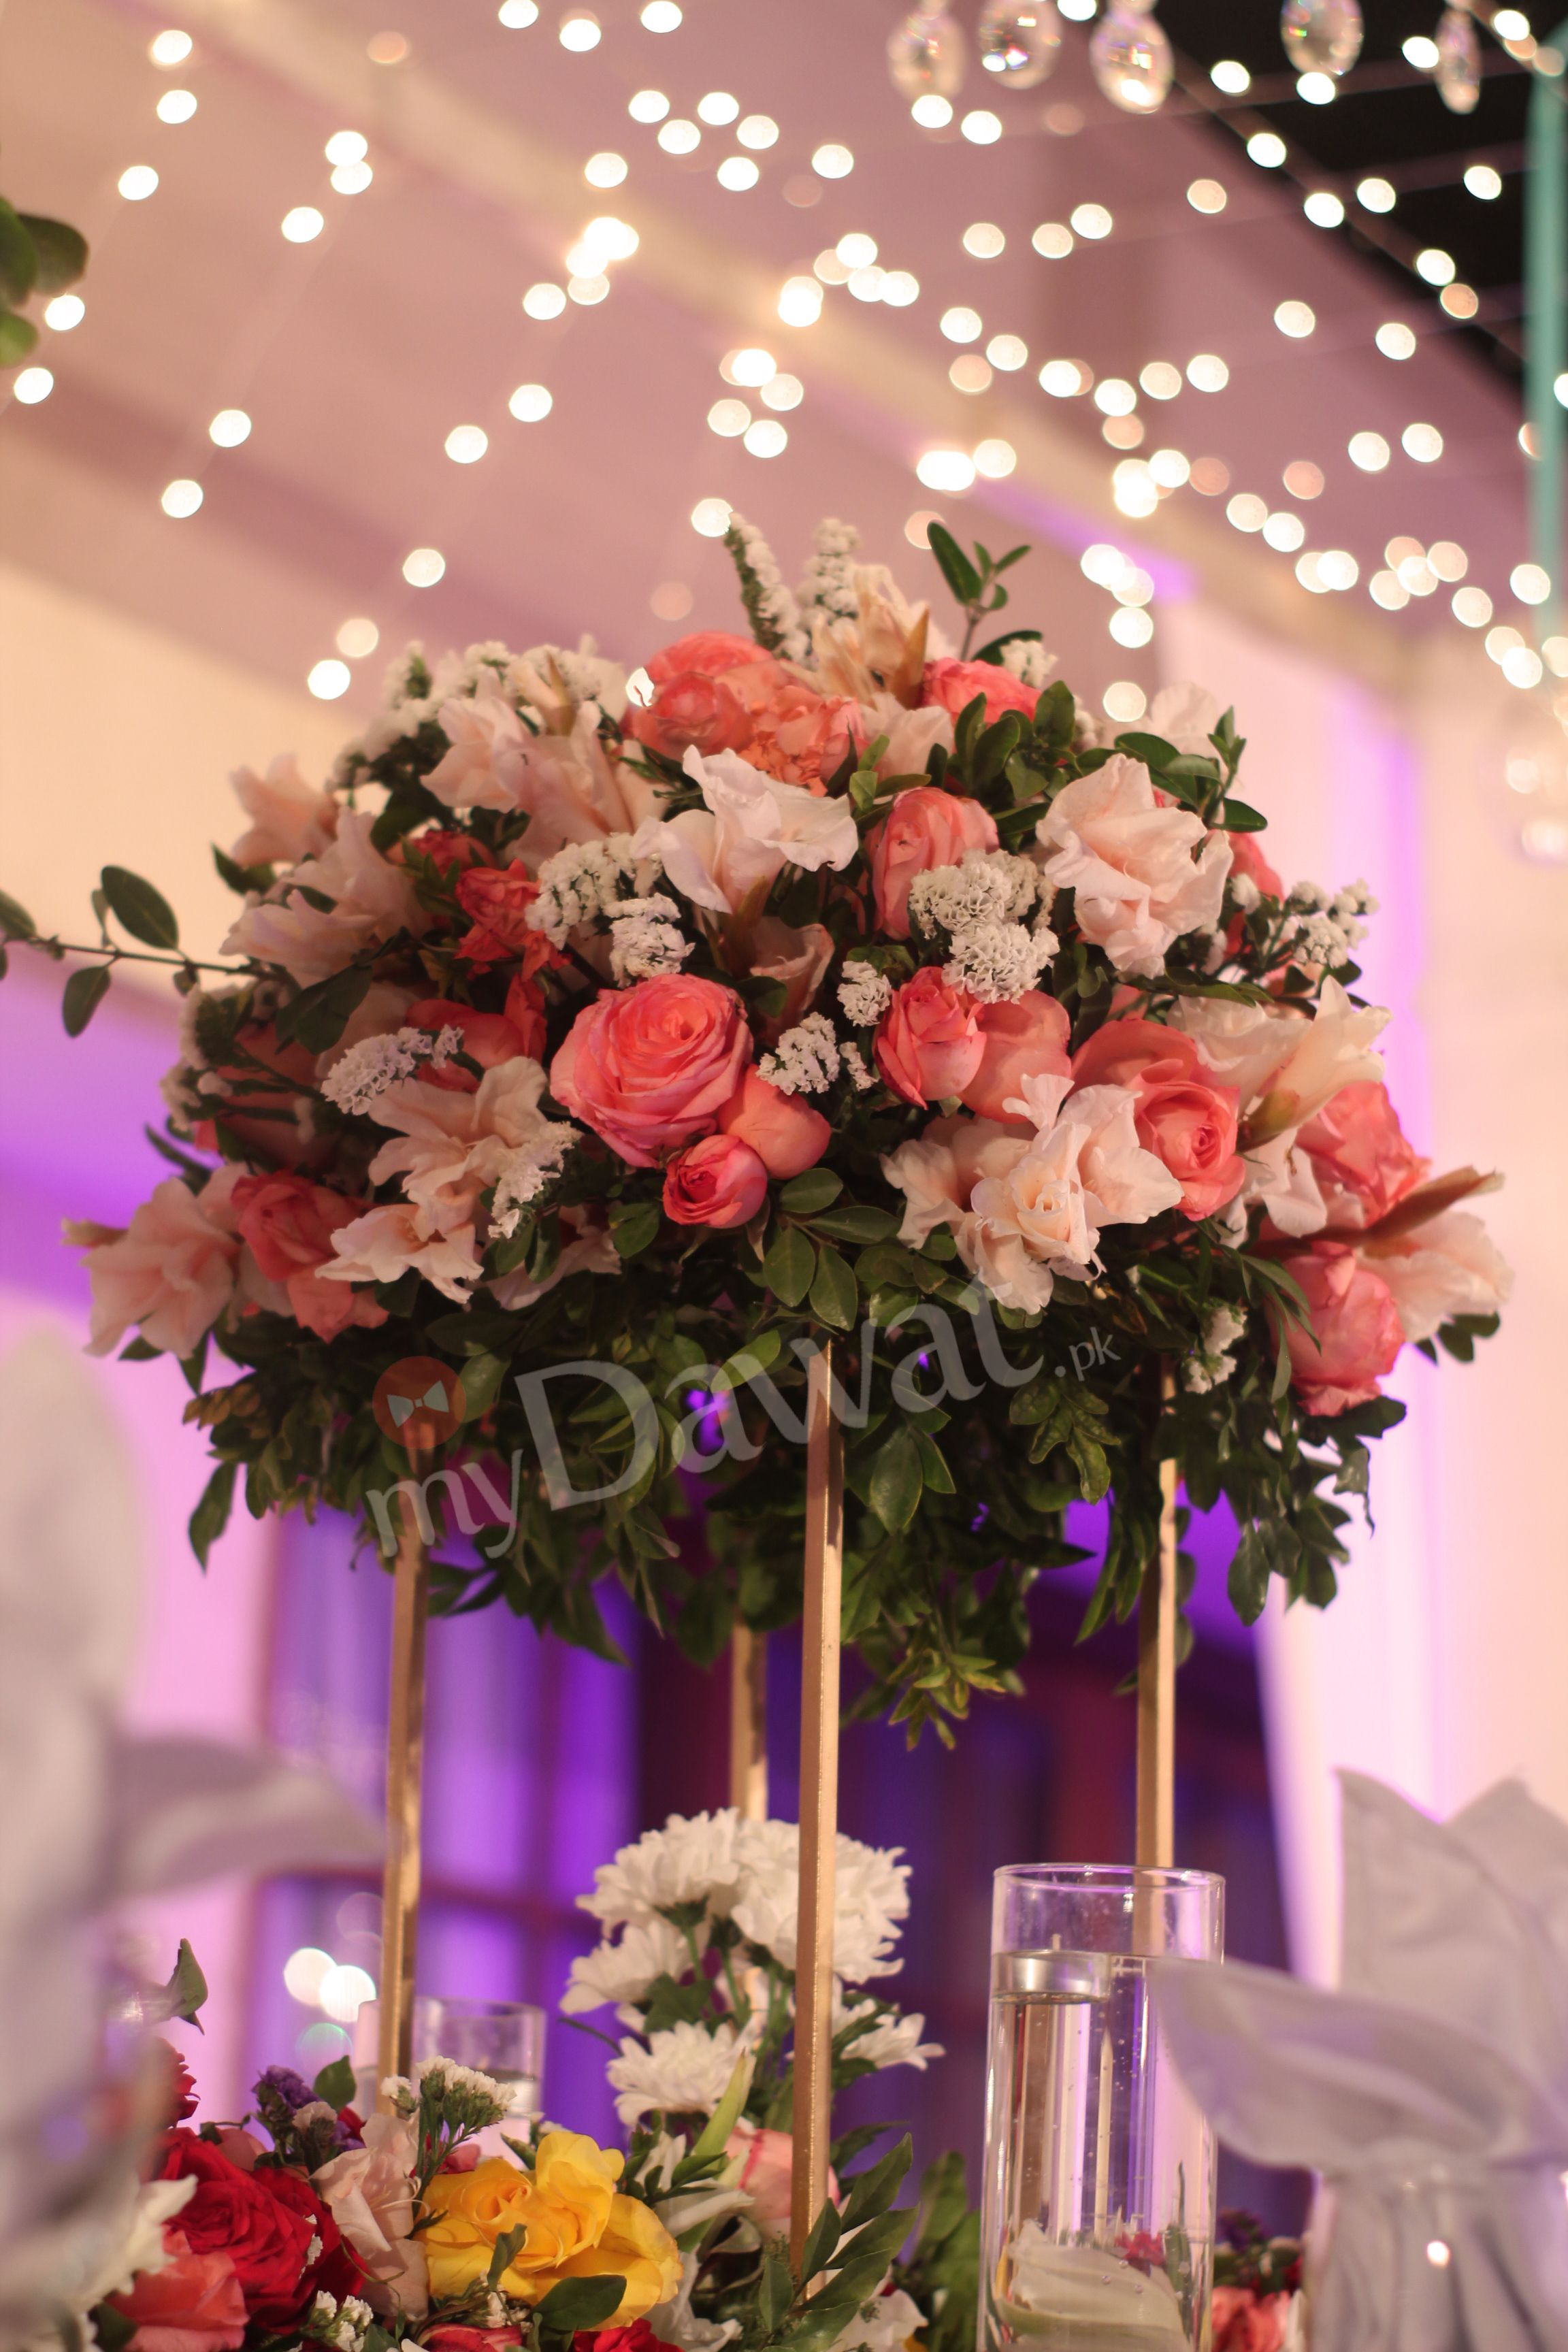 Pin by myDawat.pk on Centerpieces Centerpieces, Table